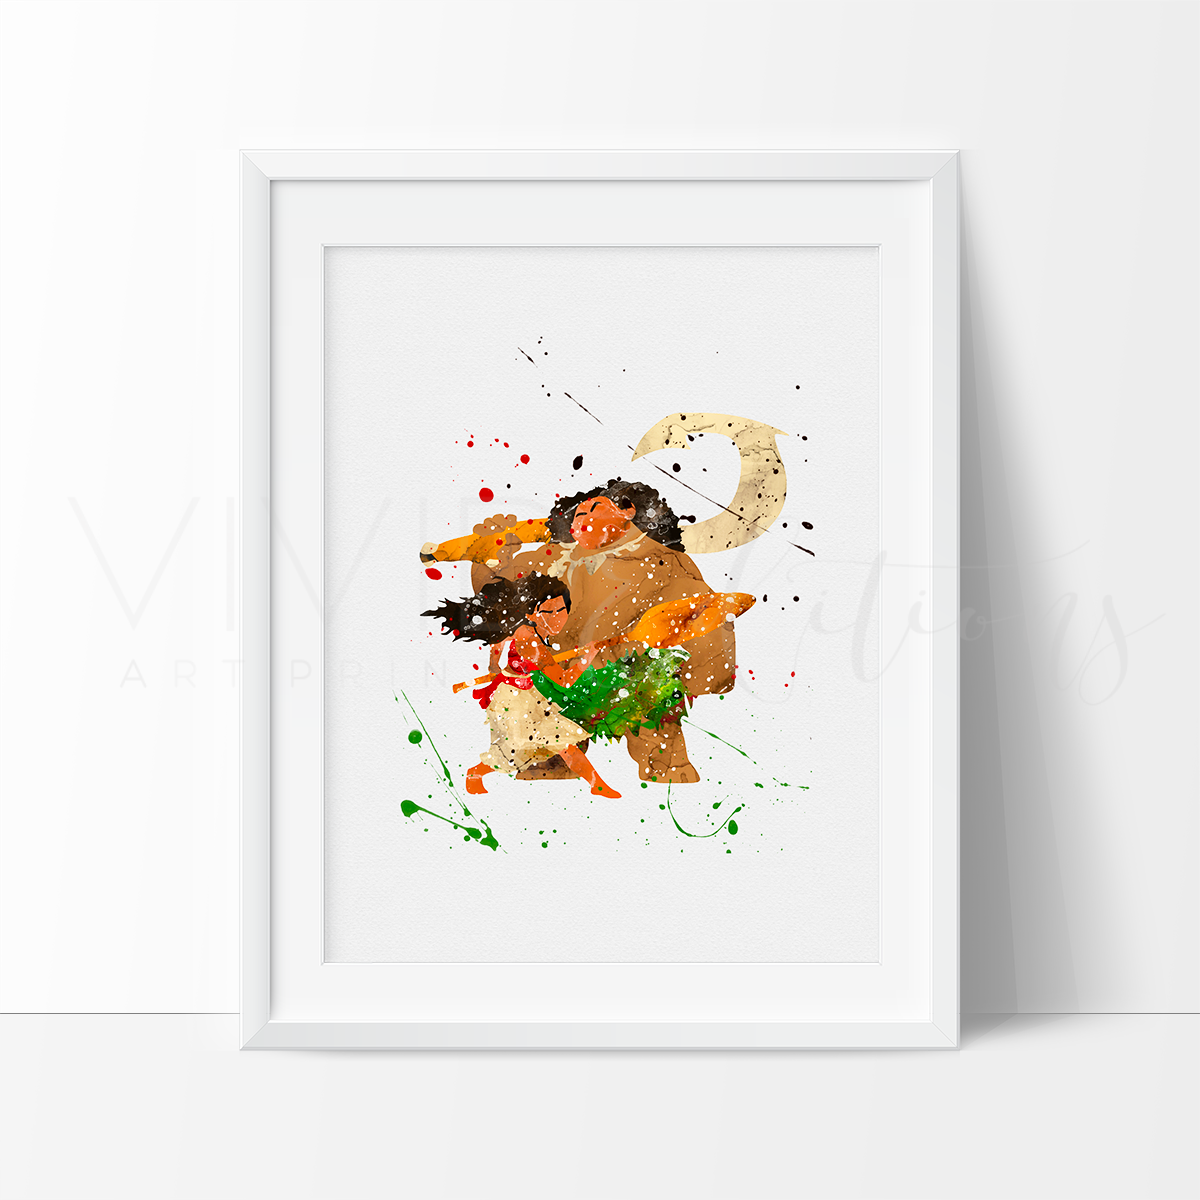 Moana & Maui Watercolor Art Print Art Print - VIVIDEDITIONS